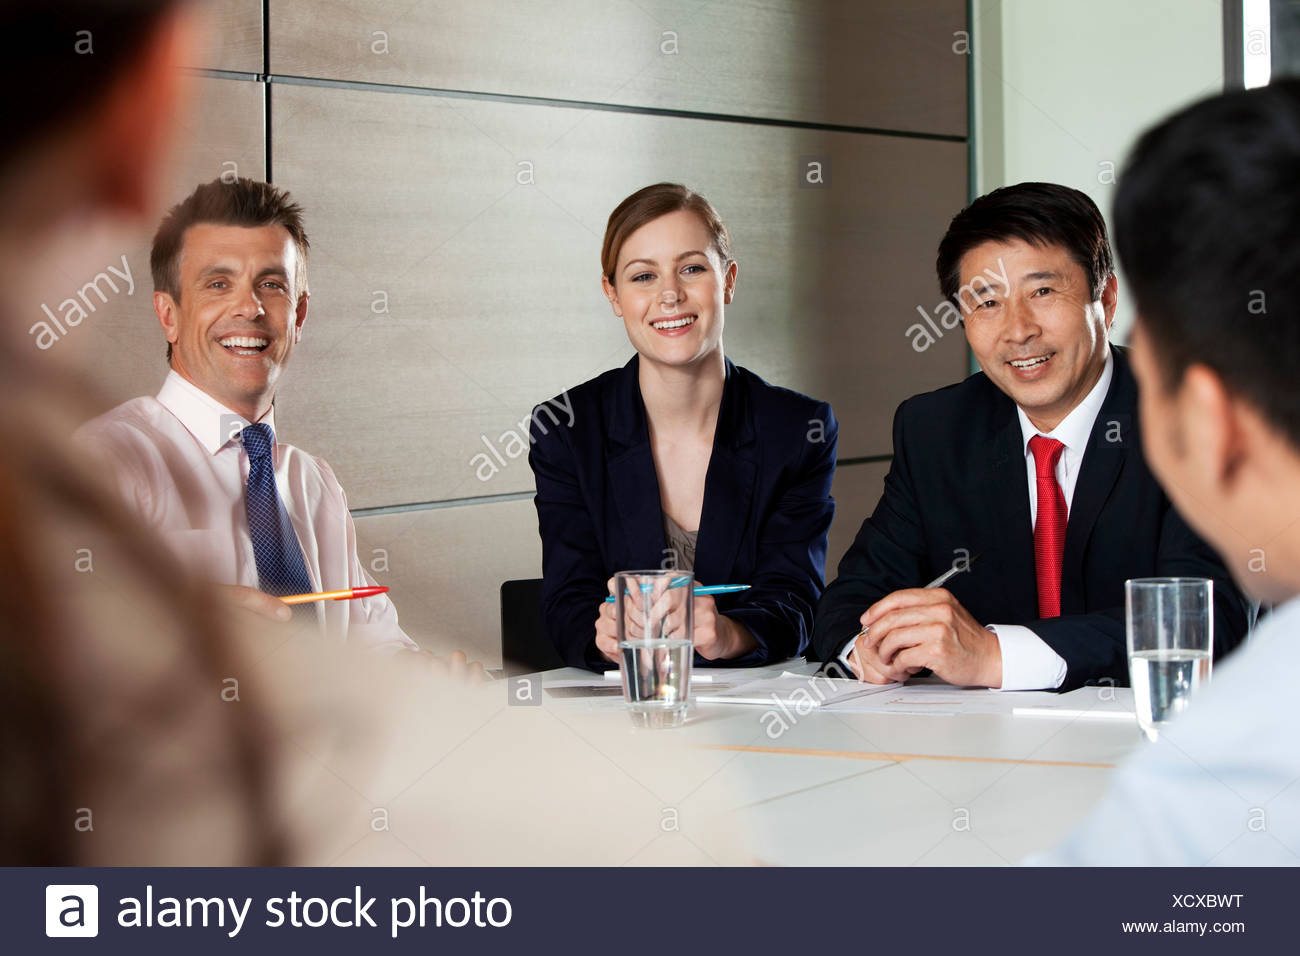 Multiracial businesspeople in meeting - Stock Image